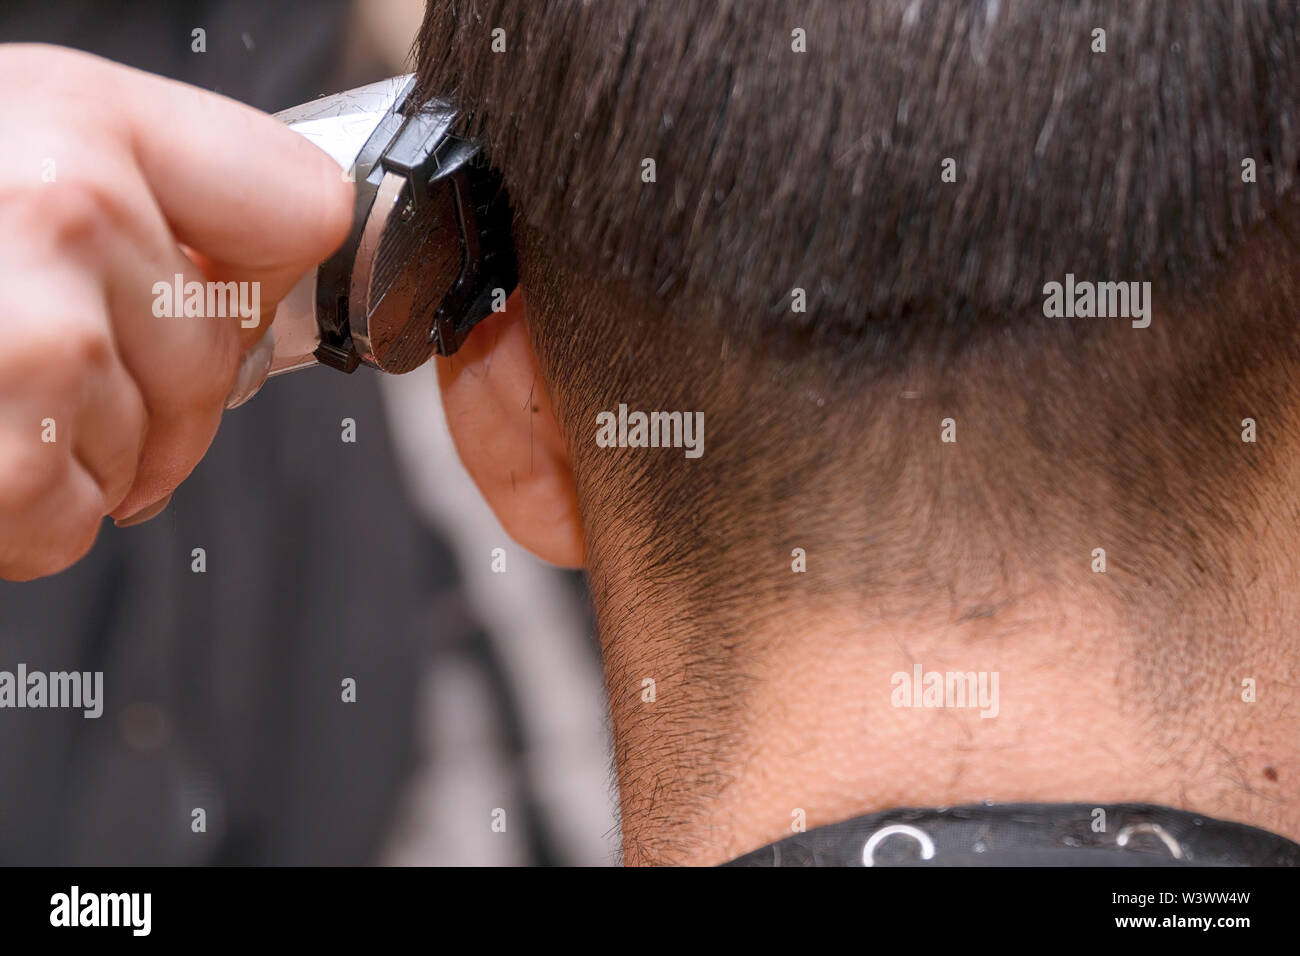 Woman Hairdresser cuts man's hair with electric clipper trimmer. Selective focus - Stock Image